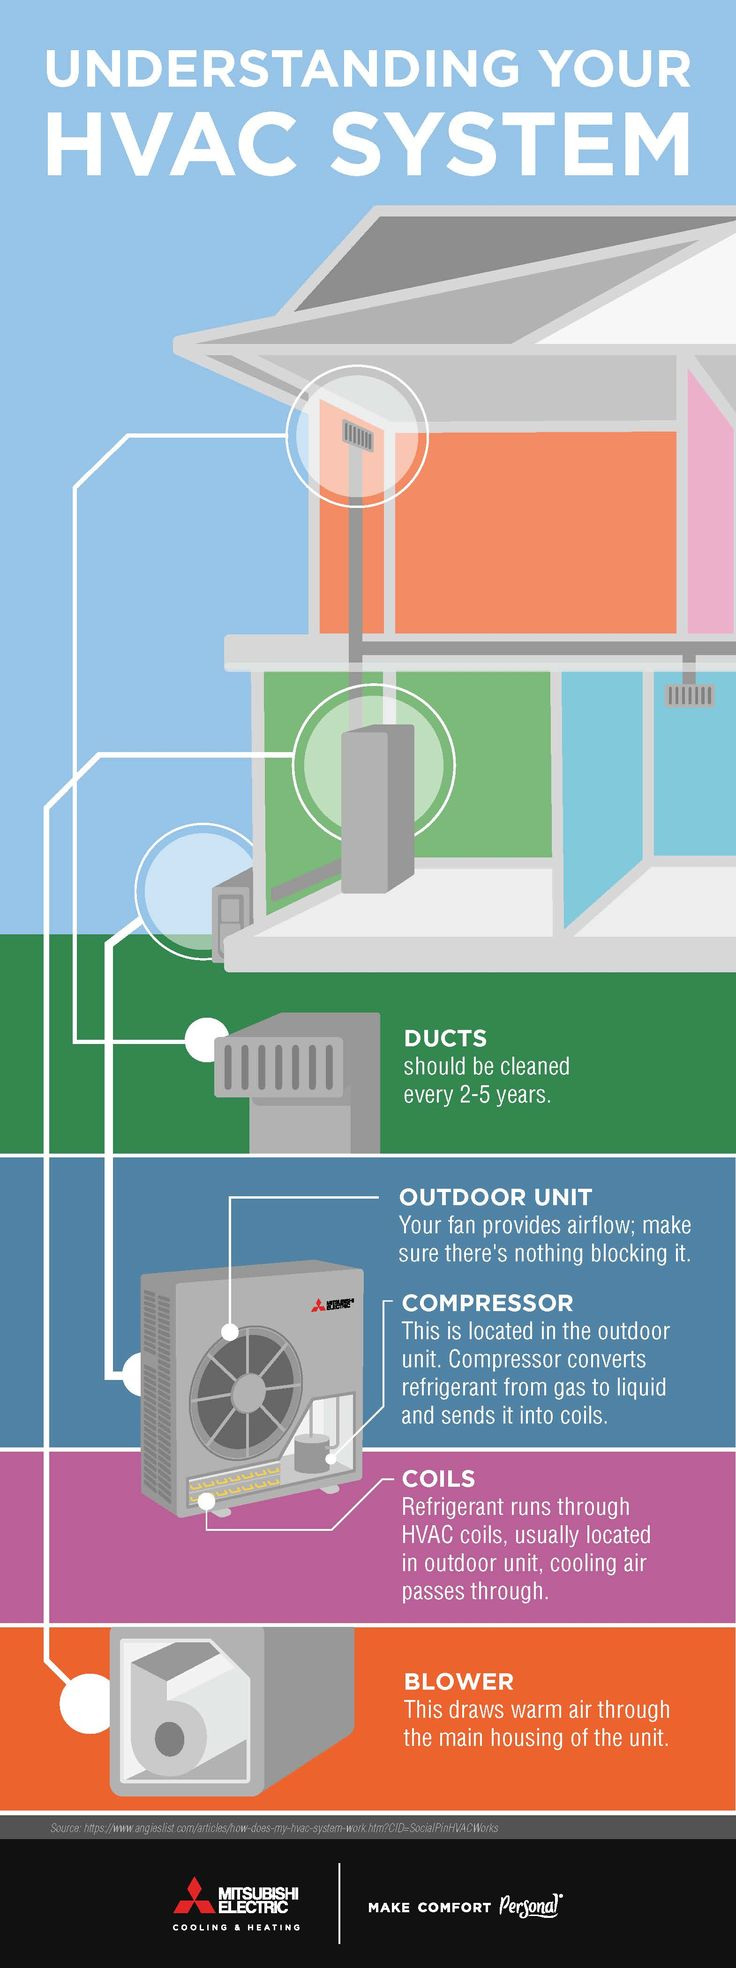 686 best Heating & Cooling Tips and Tricks images on Pinterest